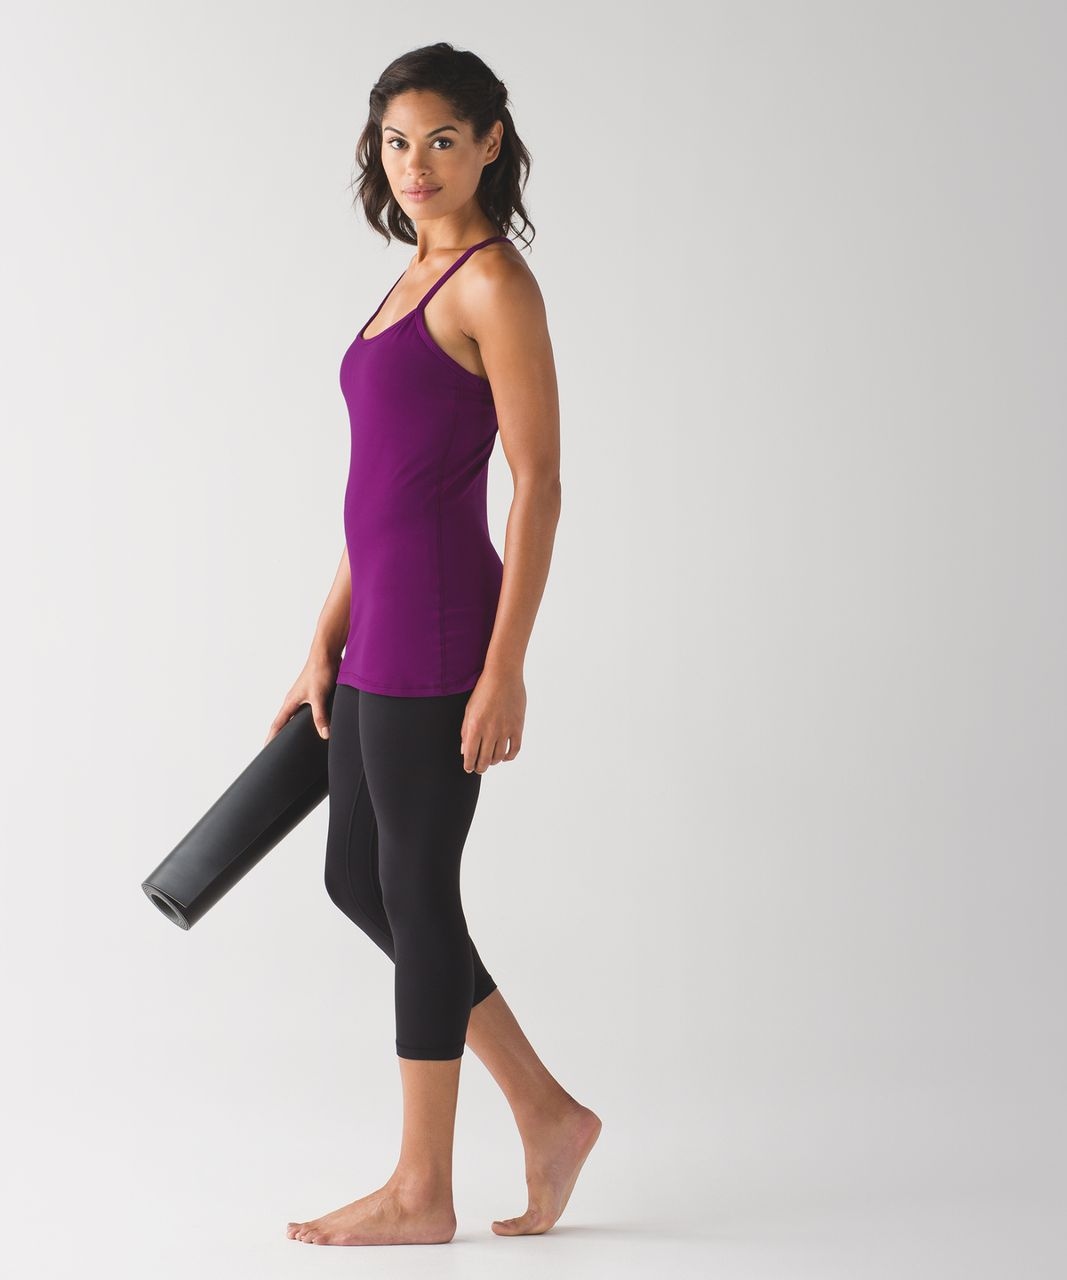 Lululemon Power Y Tank - Chilled Grape